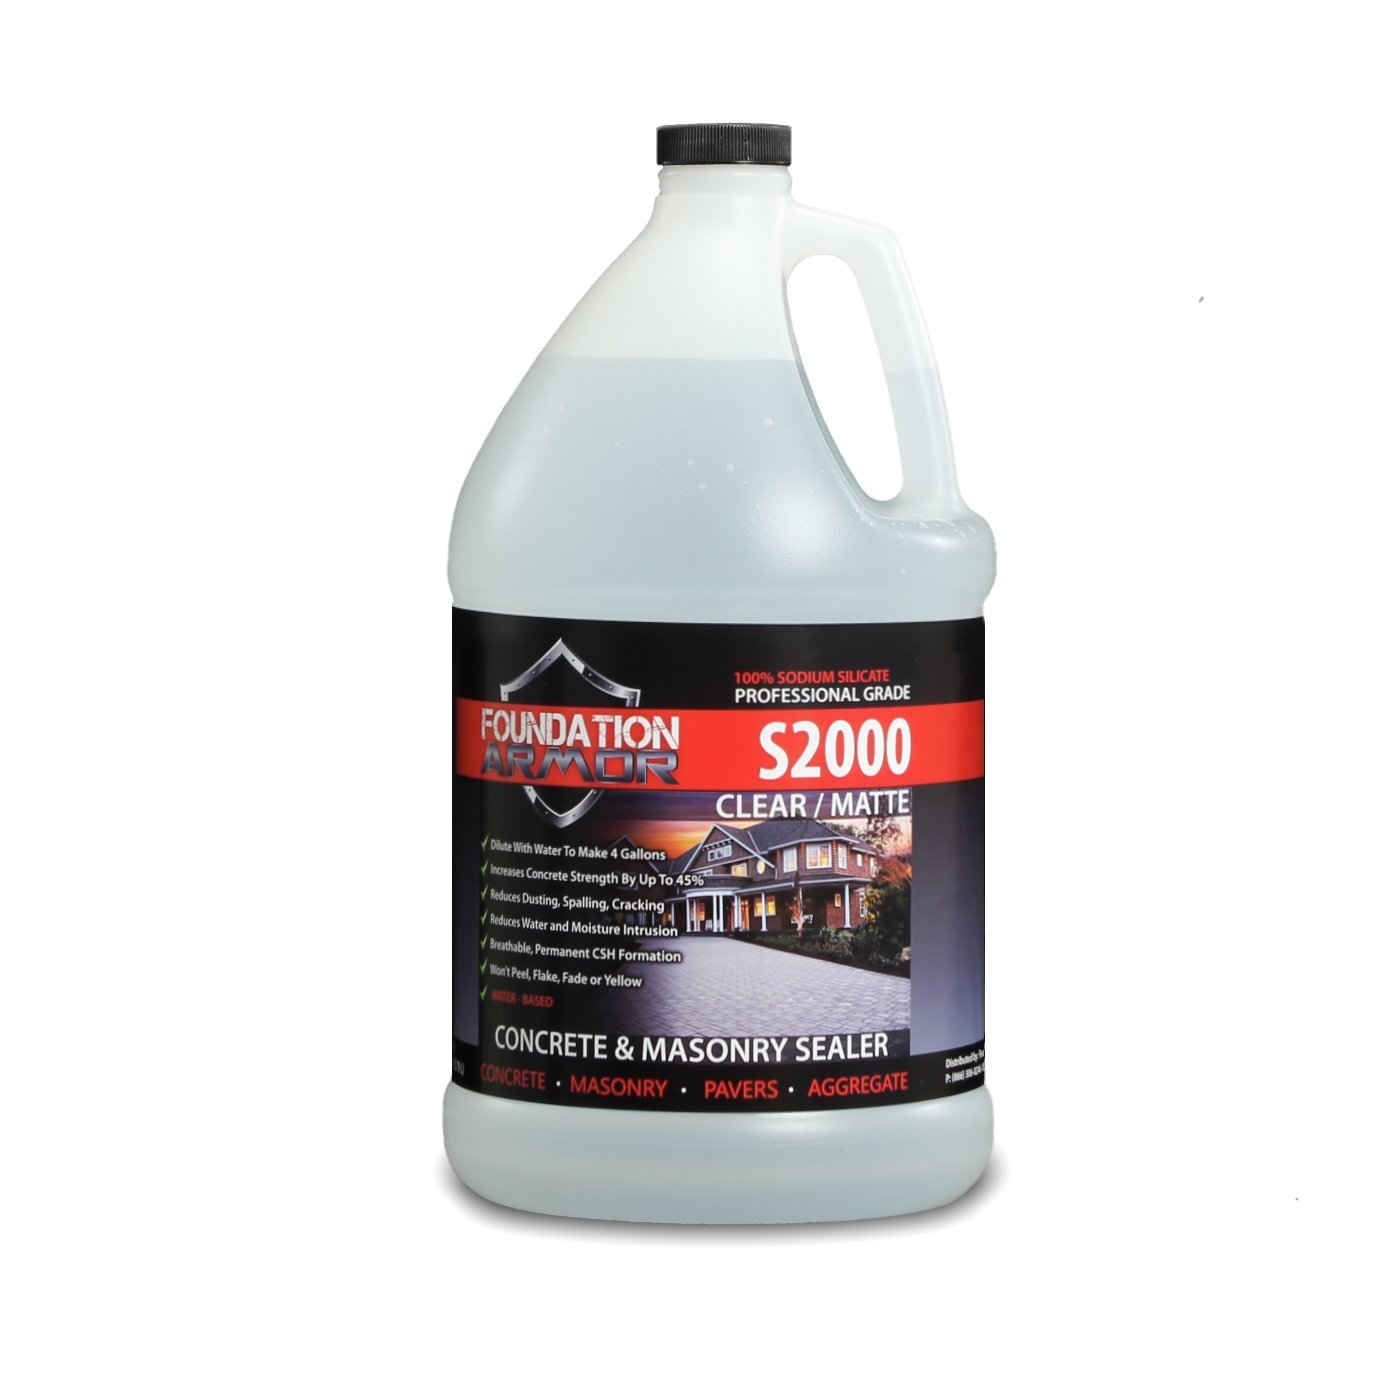 1-gal. S2000 Concentrated Sodium Silicate Concrete Sealer and Densifier (Makes 5 Gallons)